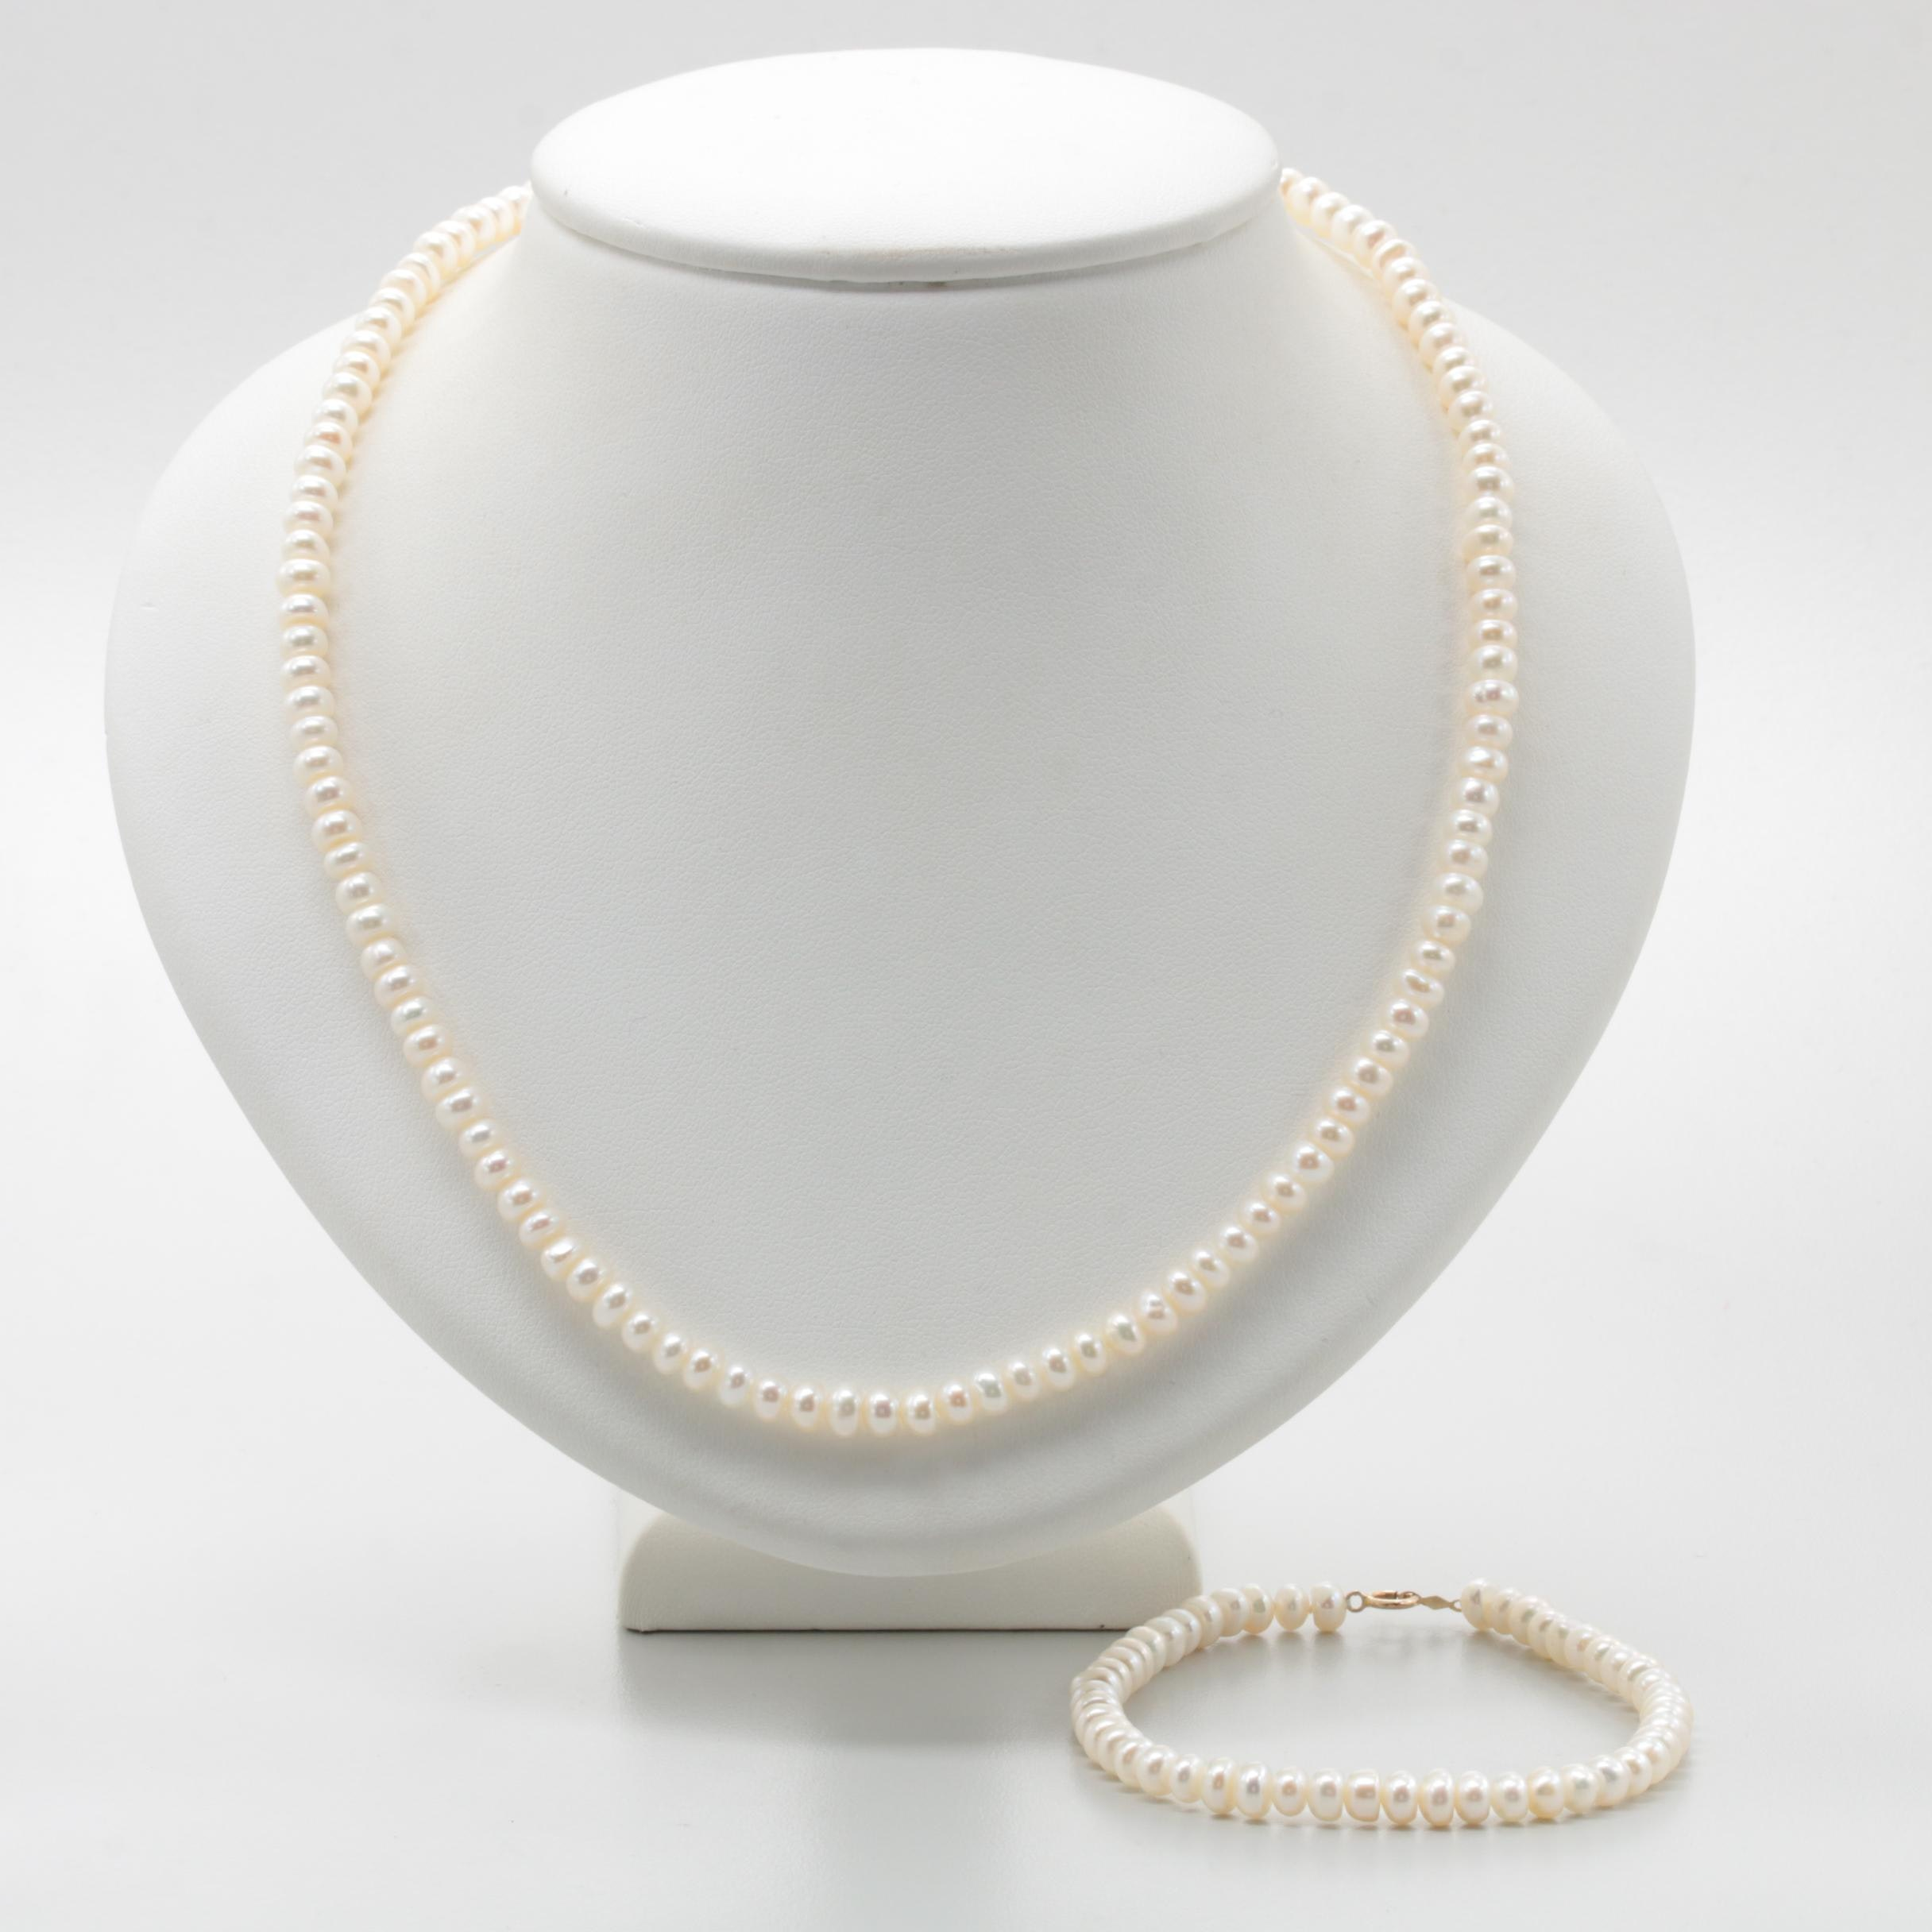 10K Yellow Gold Cultured Pearl Necklace and Bracelet Set